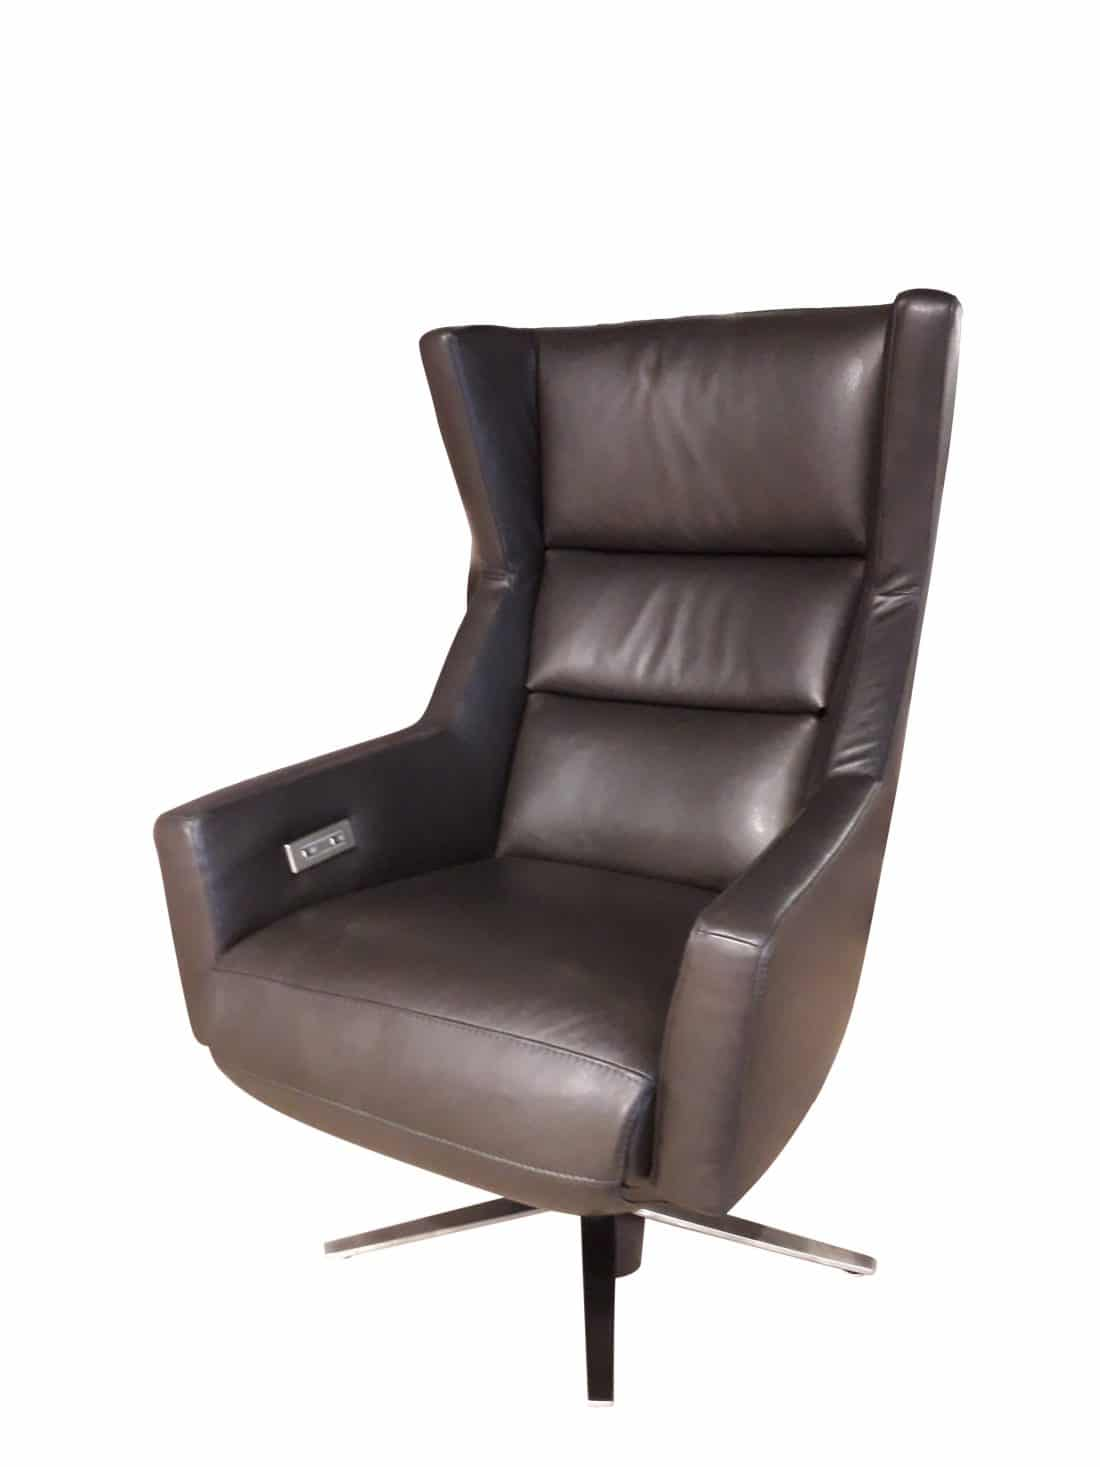 Fauteuil Zw 79 Scaled